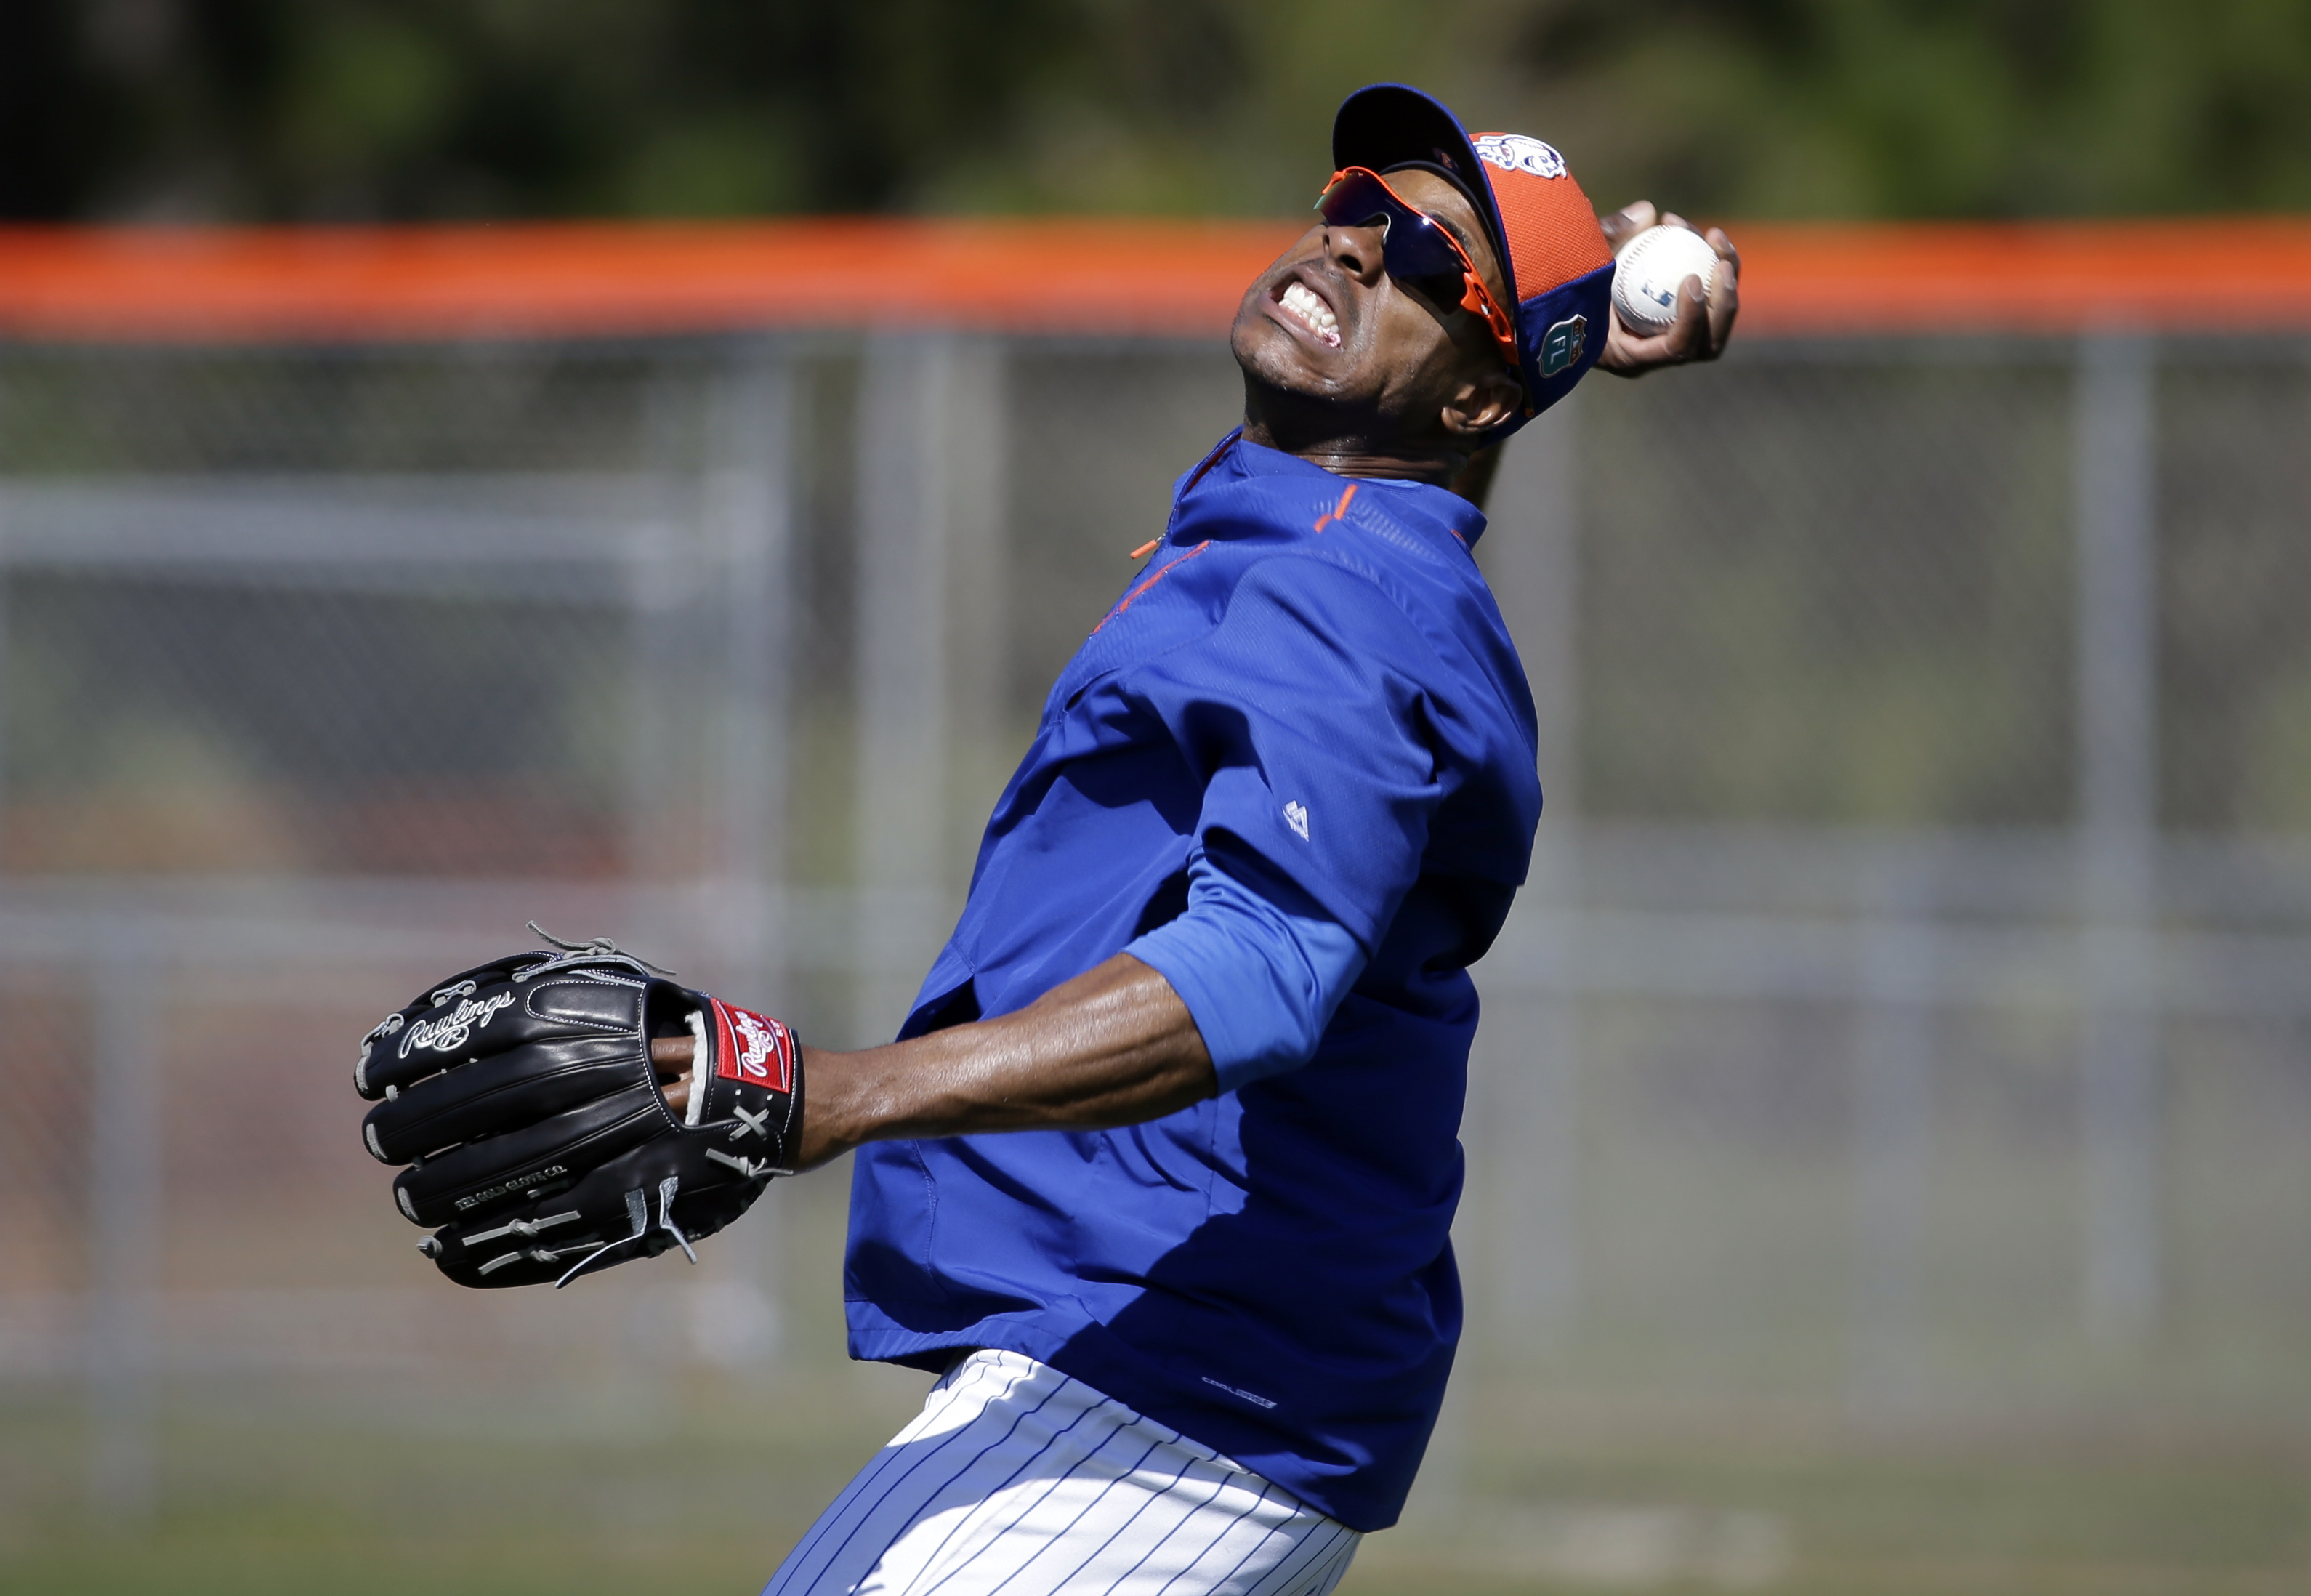 New York Mets' Curtis Granderson jokes as he pretends to heave a ball in from the outfield during spring training baseball practice Friday, Feb. 26, 2016, in Port St. Lucie, Fla. (AP Photo/Jeff Roberson)